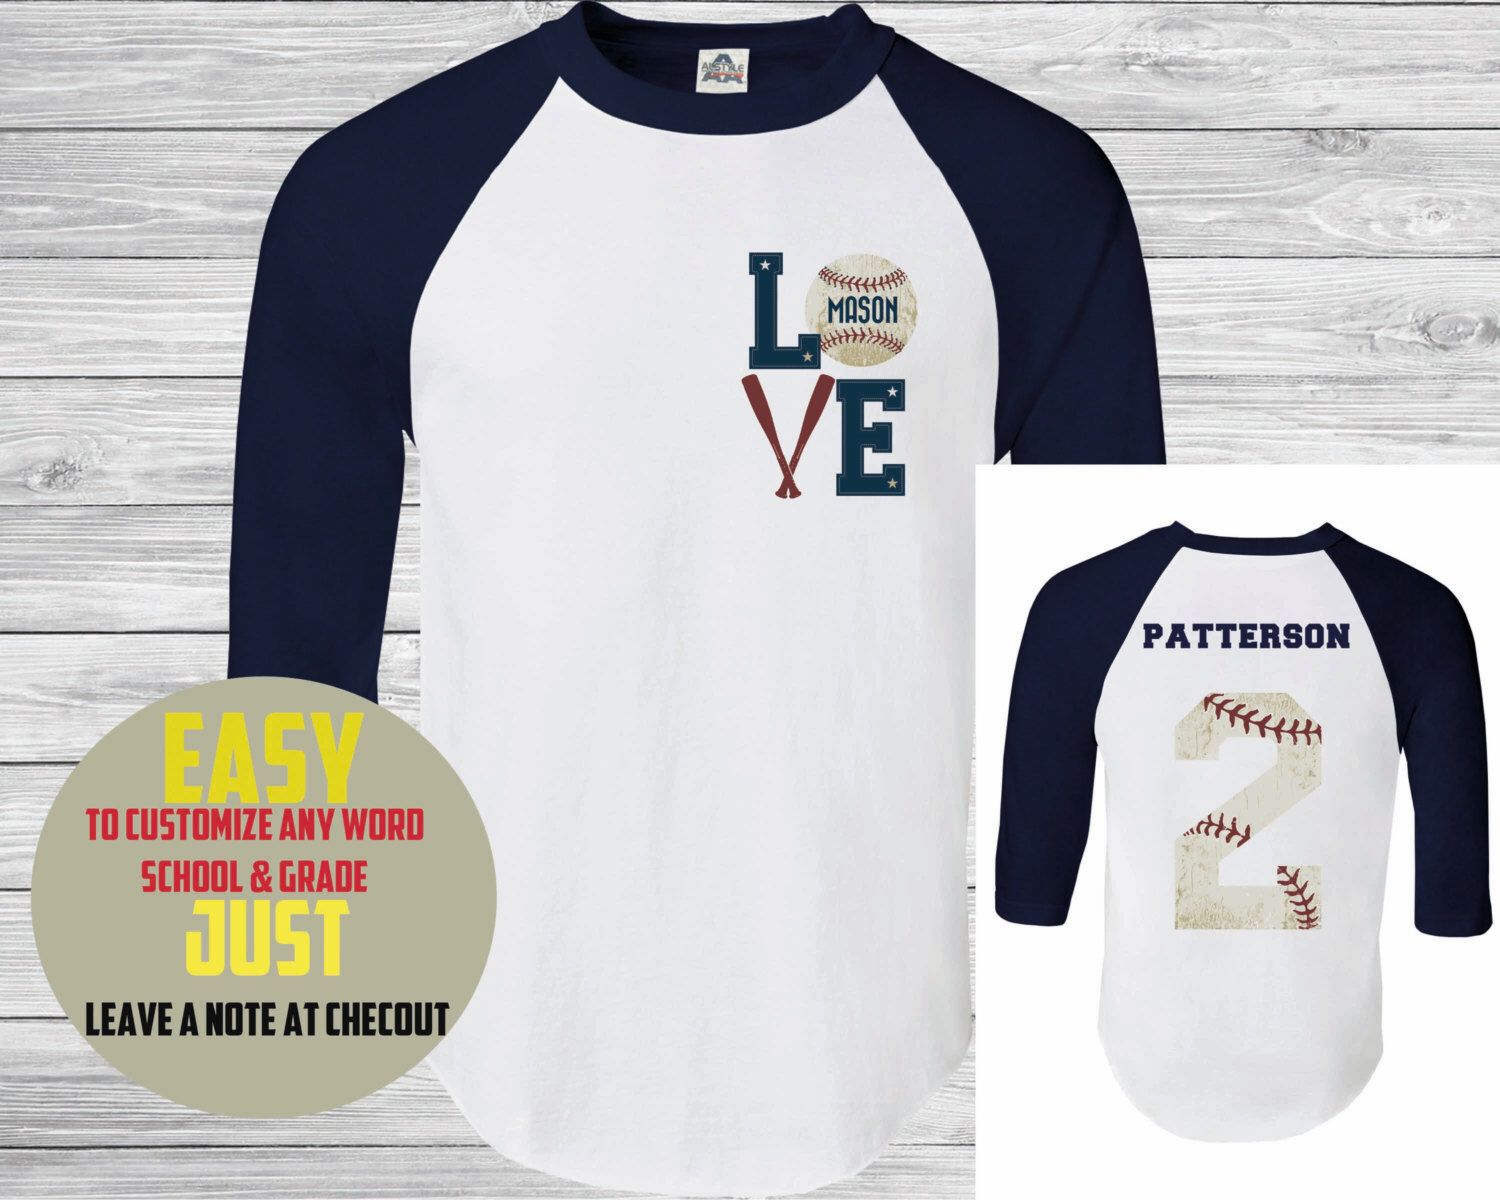 Pin by Brittani McCarty on Baseball | Pinterest | Baseball tees, Gym ...